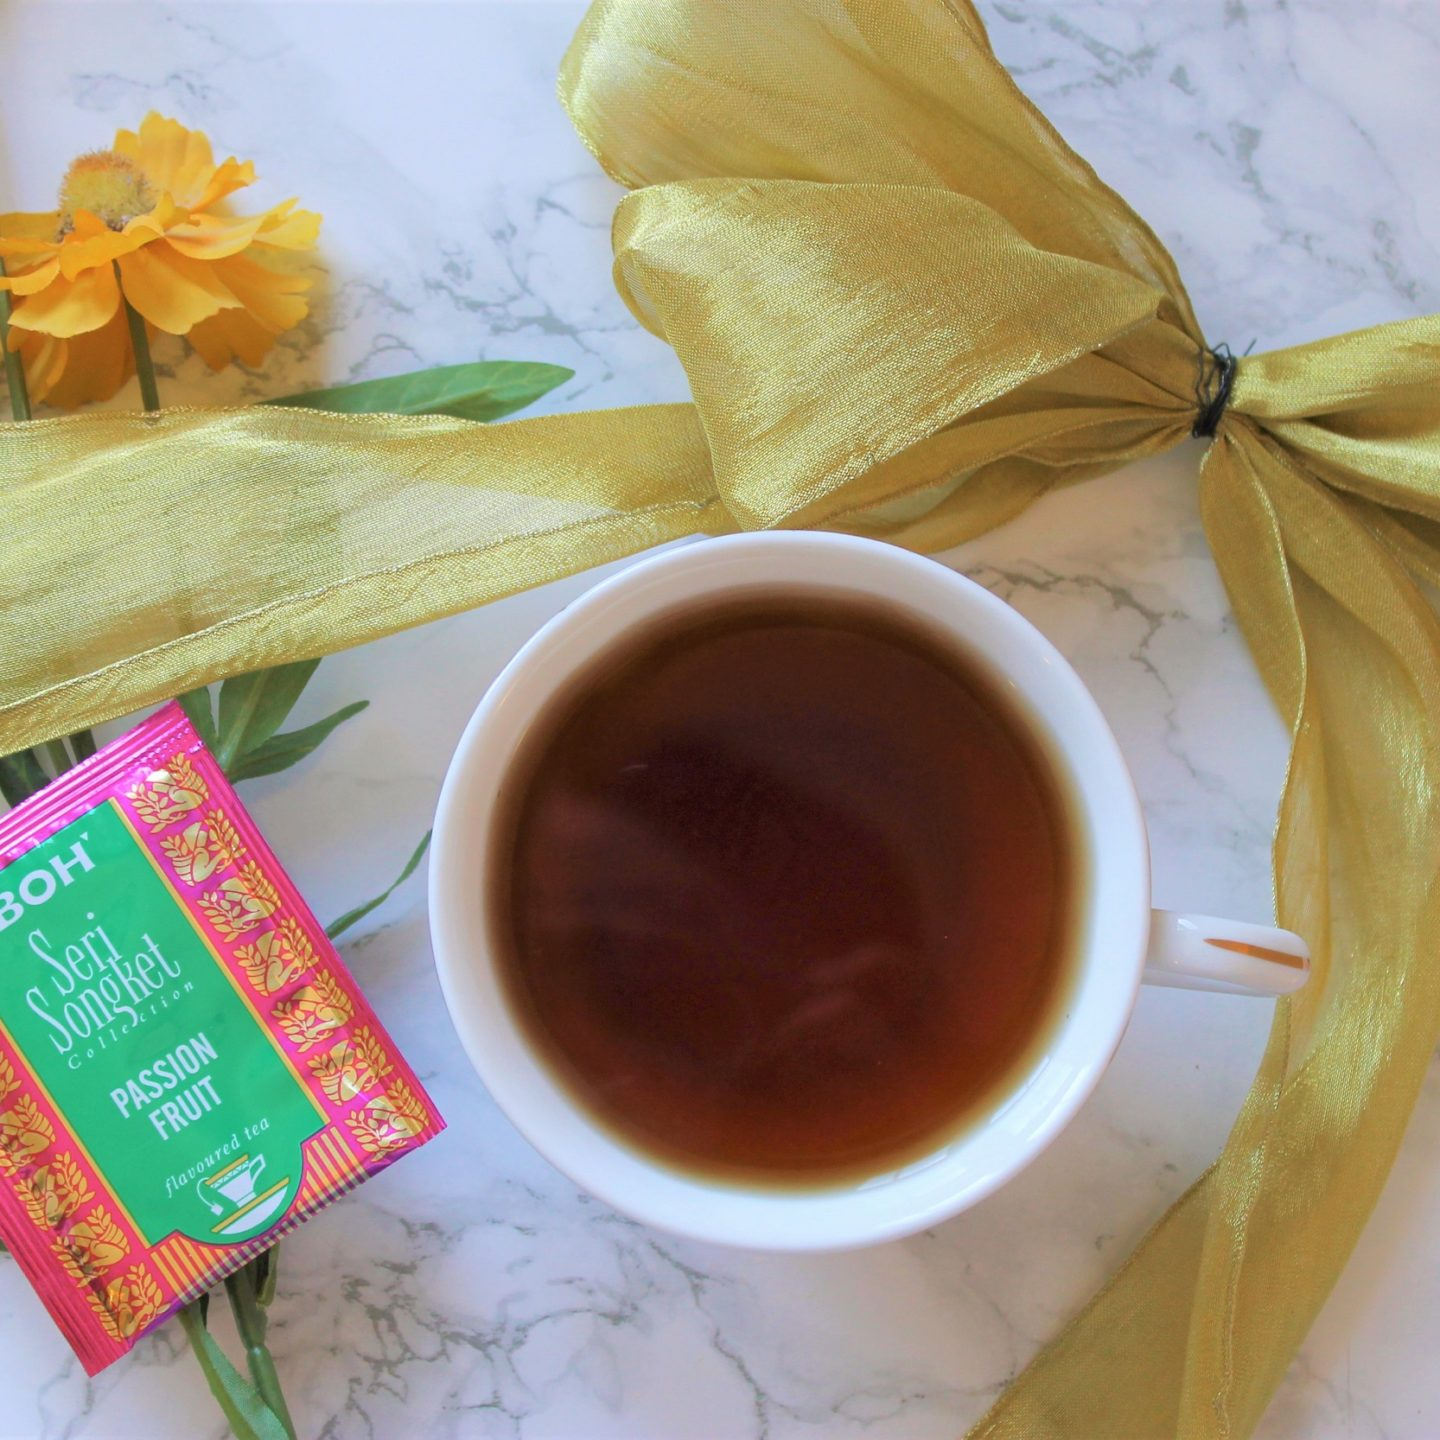 BOH Passion Fruit Tea Review